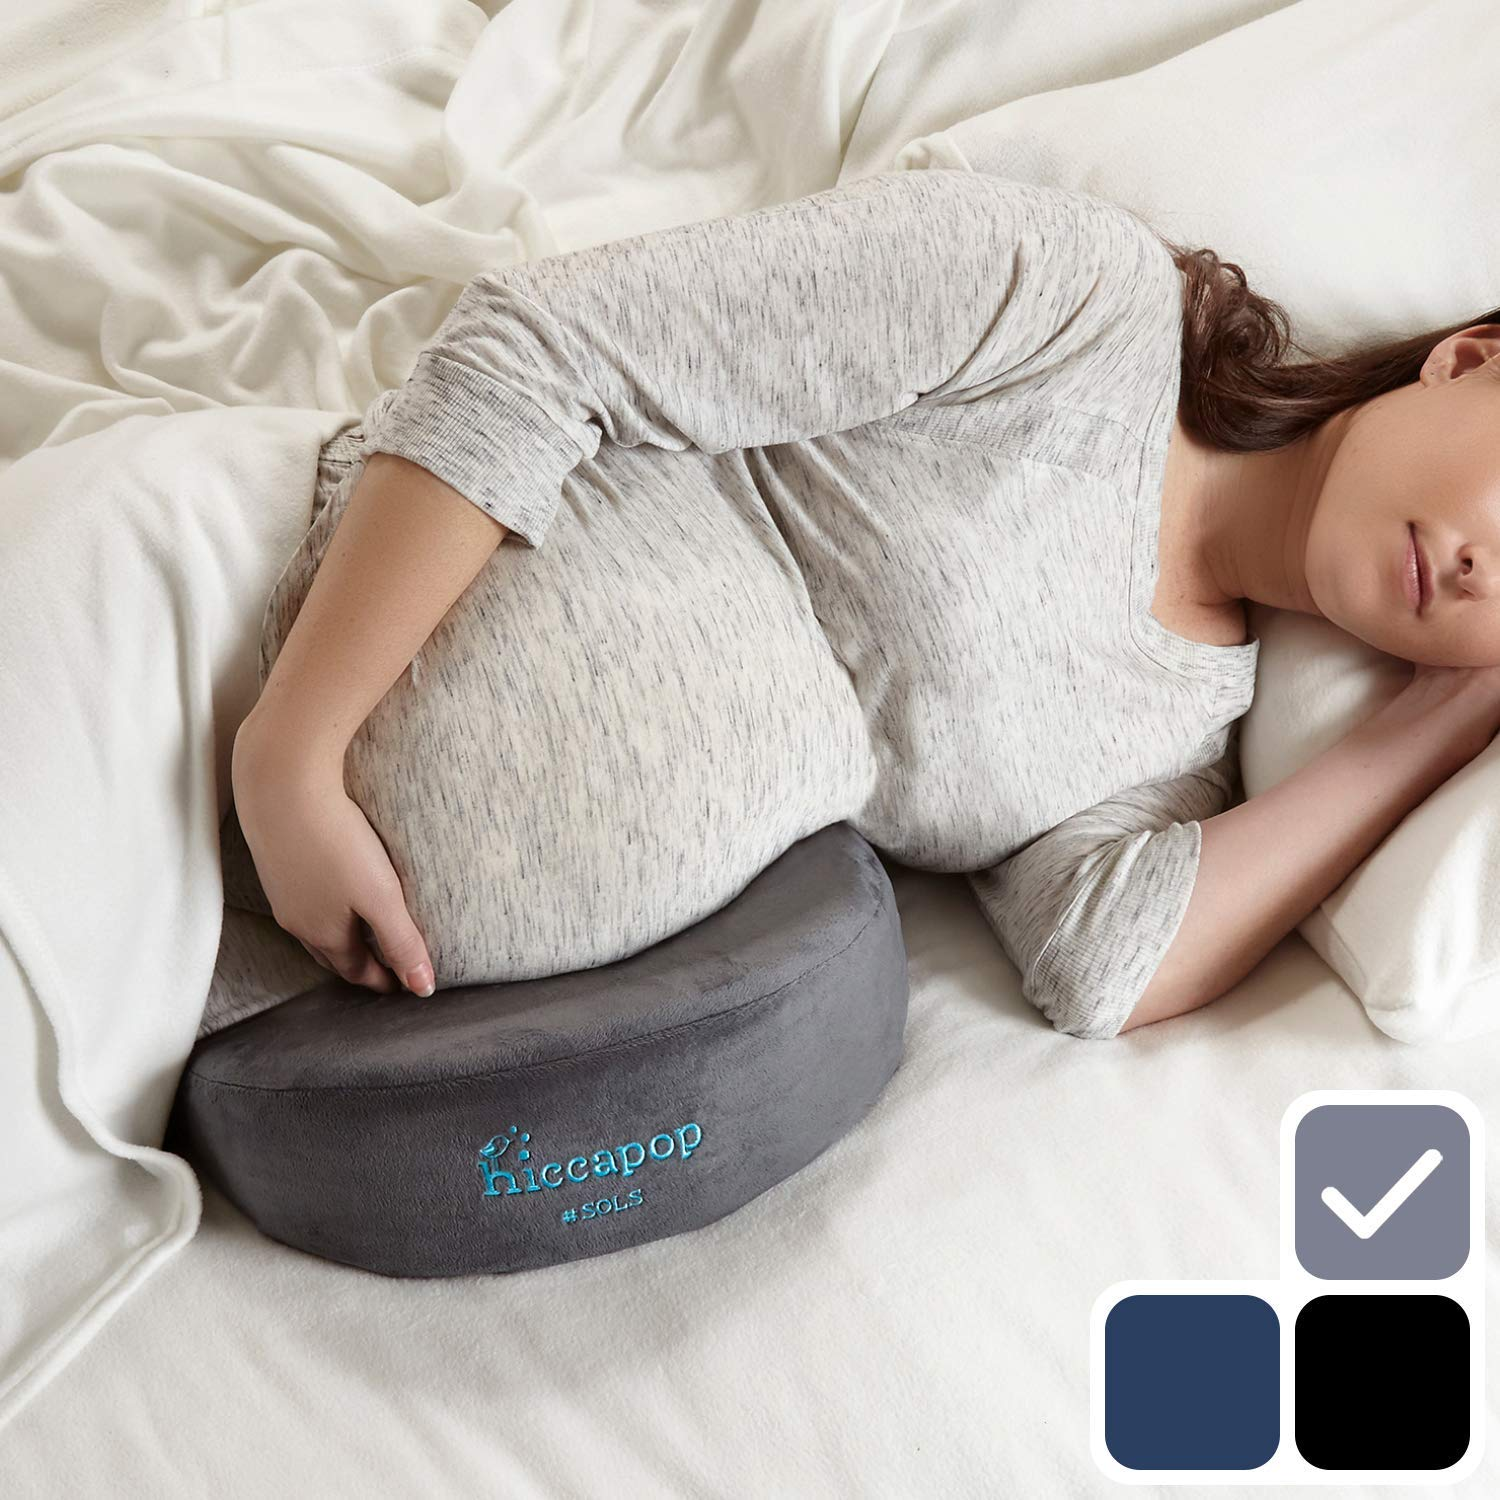 hiccapop best pregnancy pillow review by www.dailysleep.org